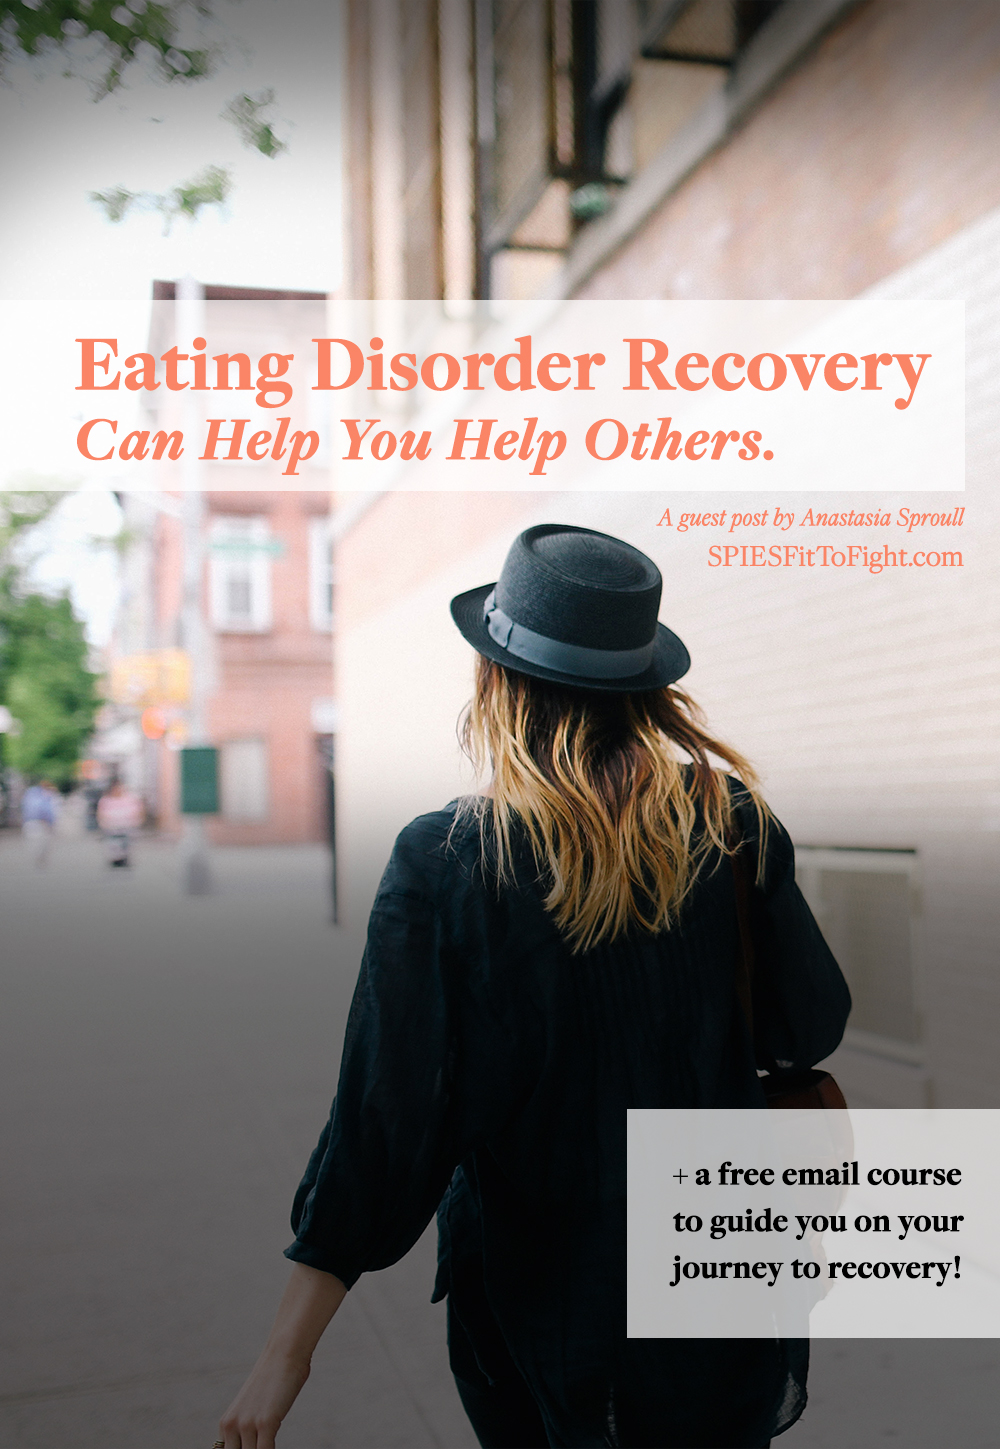 Eating disorder recovery is possible! Find out how Anastasia Sproull turned her eating disorder into something quite positive.